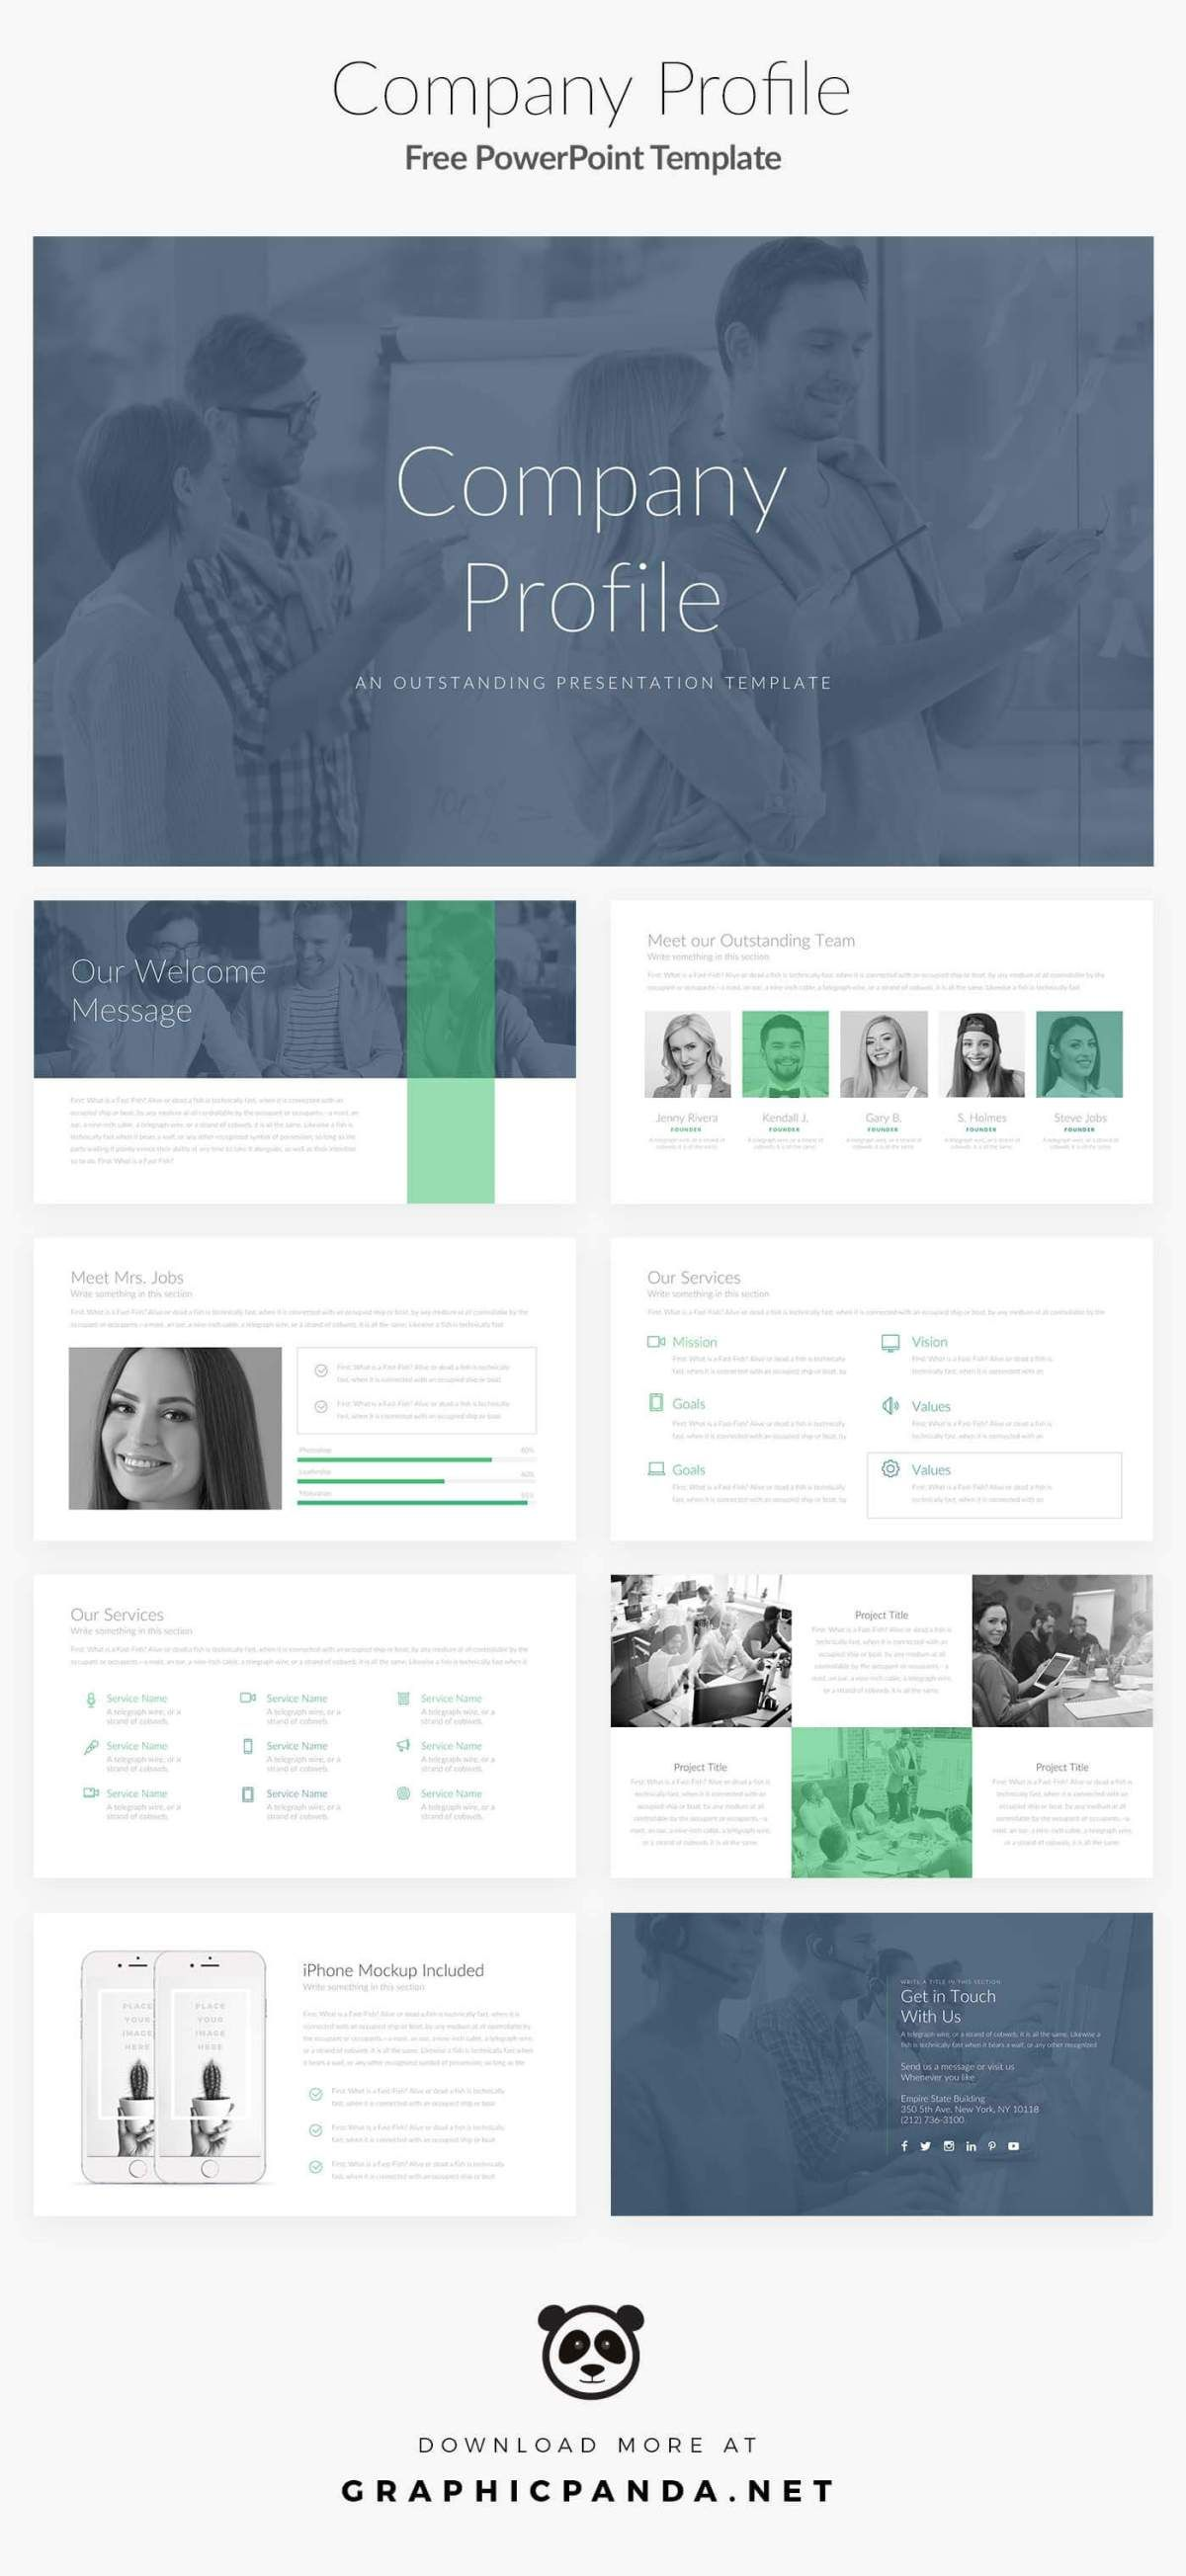 Free powerpoint template company profile pinterest free powerpoint template company profile accmission Images